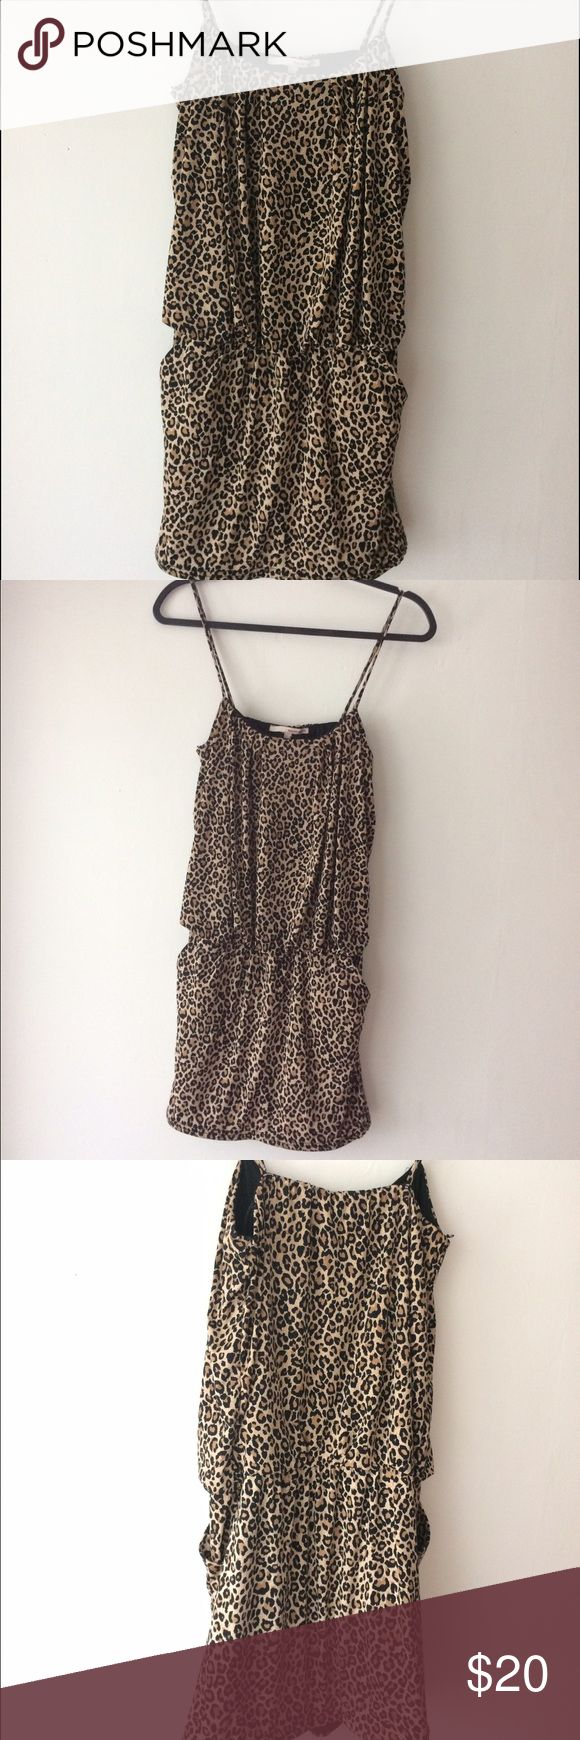 Tally weijl cheetah dress, size M Cheetah mini dress, sexy and very comfortable, has pockets. Was worn only 2-3 times, like new. Tally weijl Dresses Mini